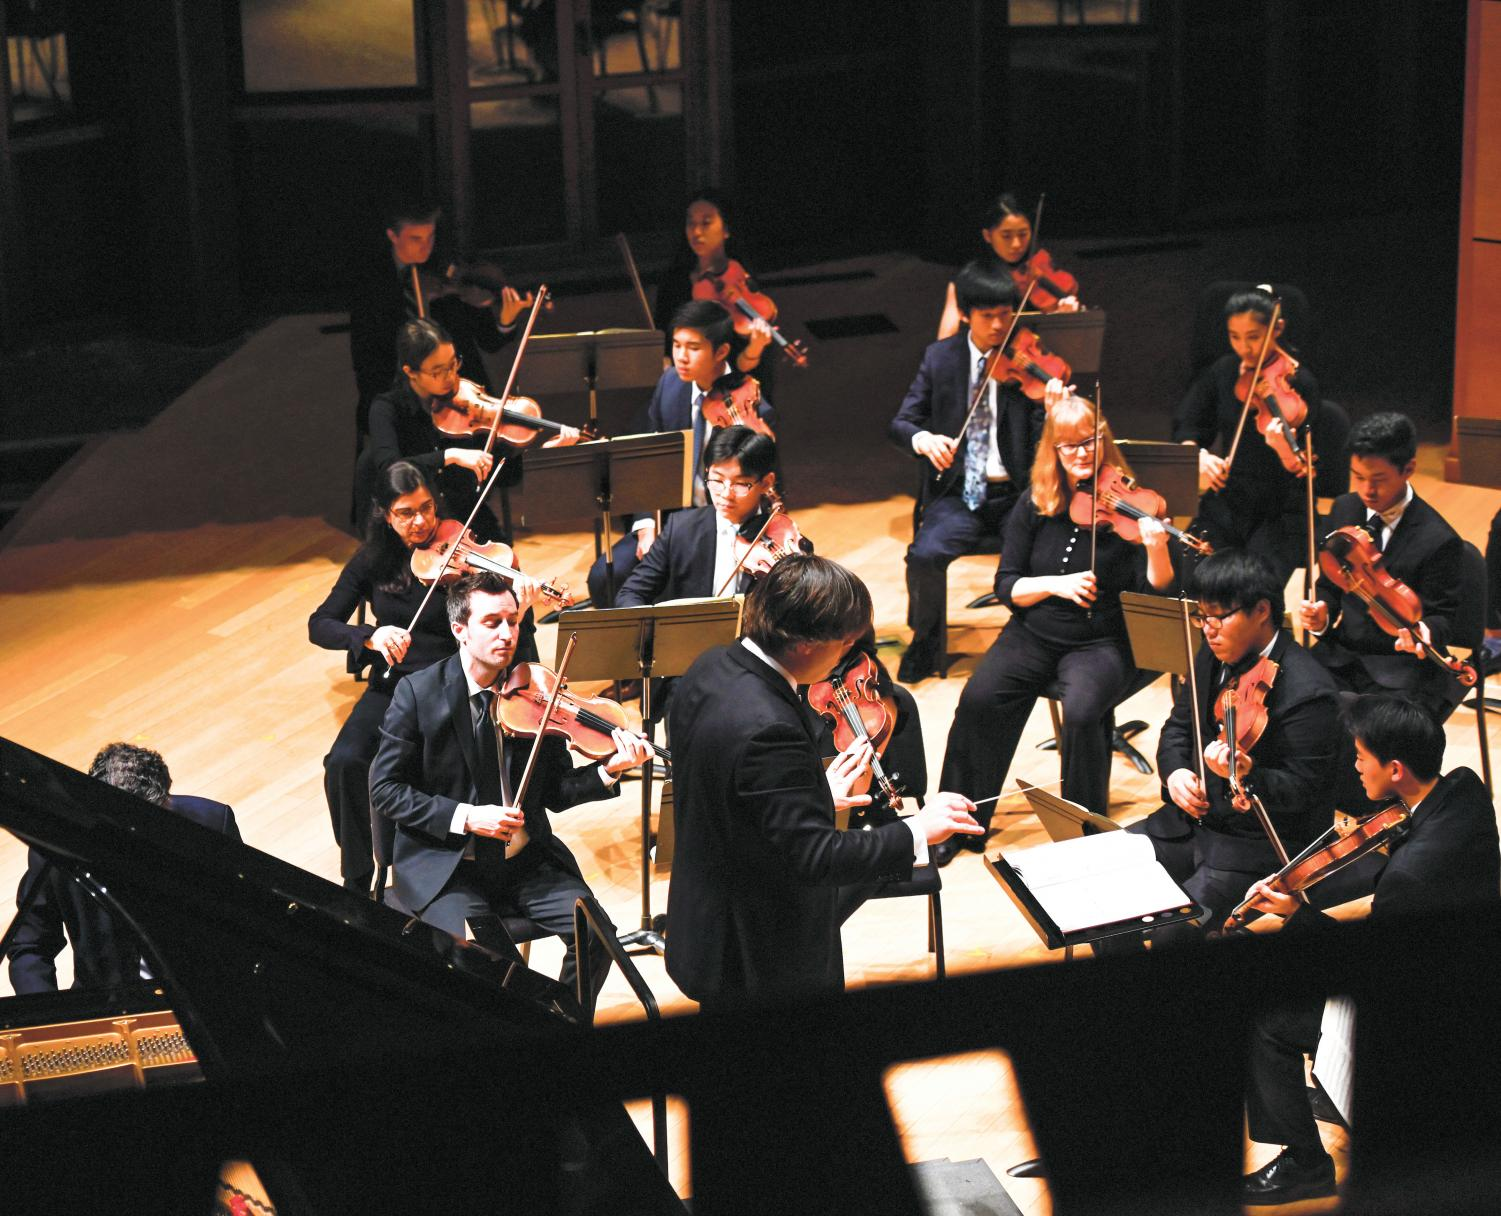 Fabio Witkowski conducts the Philharmonic Orchestra during its debut concert in Elfers Hall.